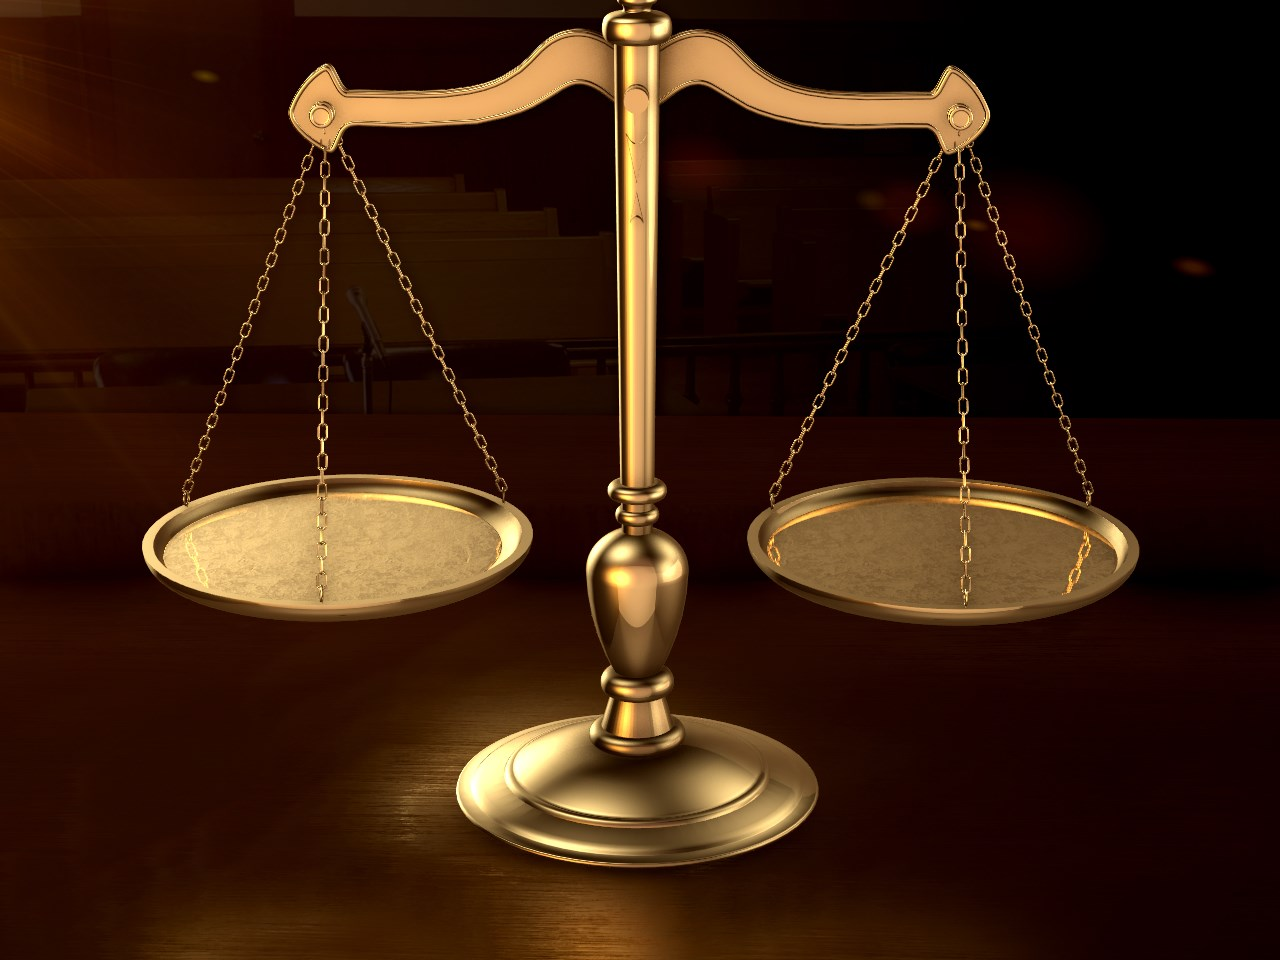 justice-scales-court_1518226418137.jpg